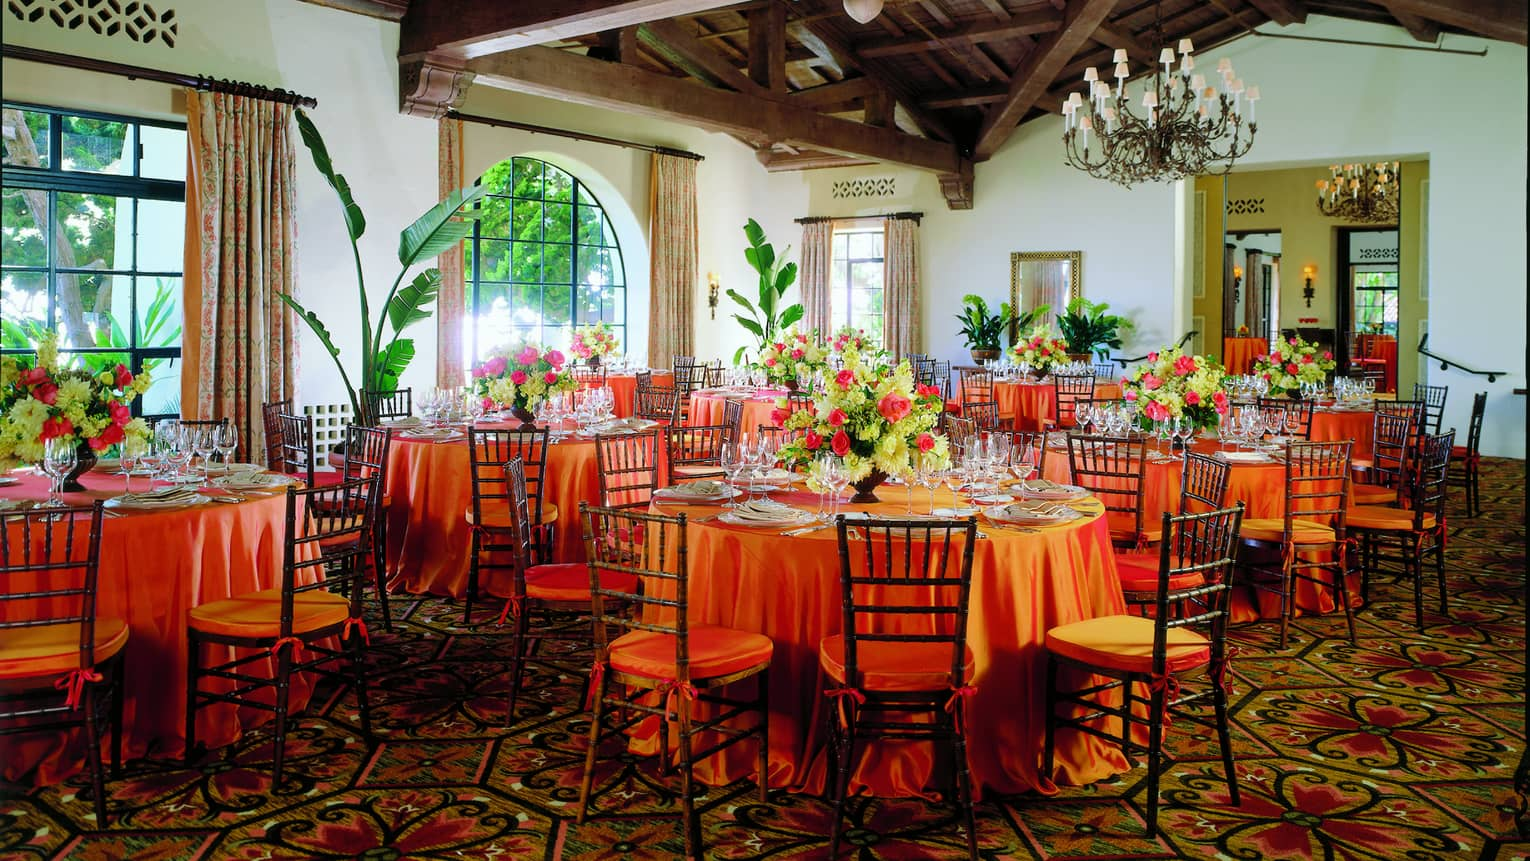 La Marina banquet tables under wood beam ceilings, sunny arched windows and tropical plants